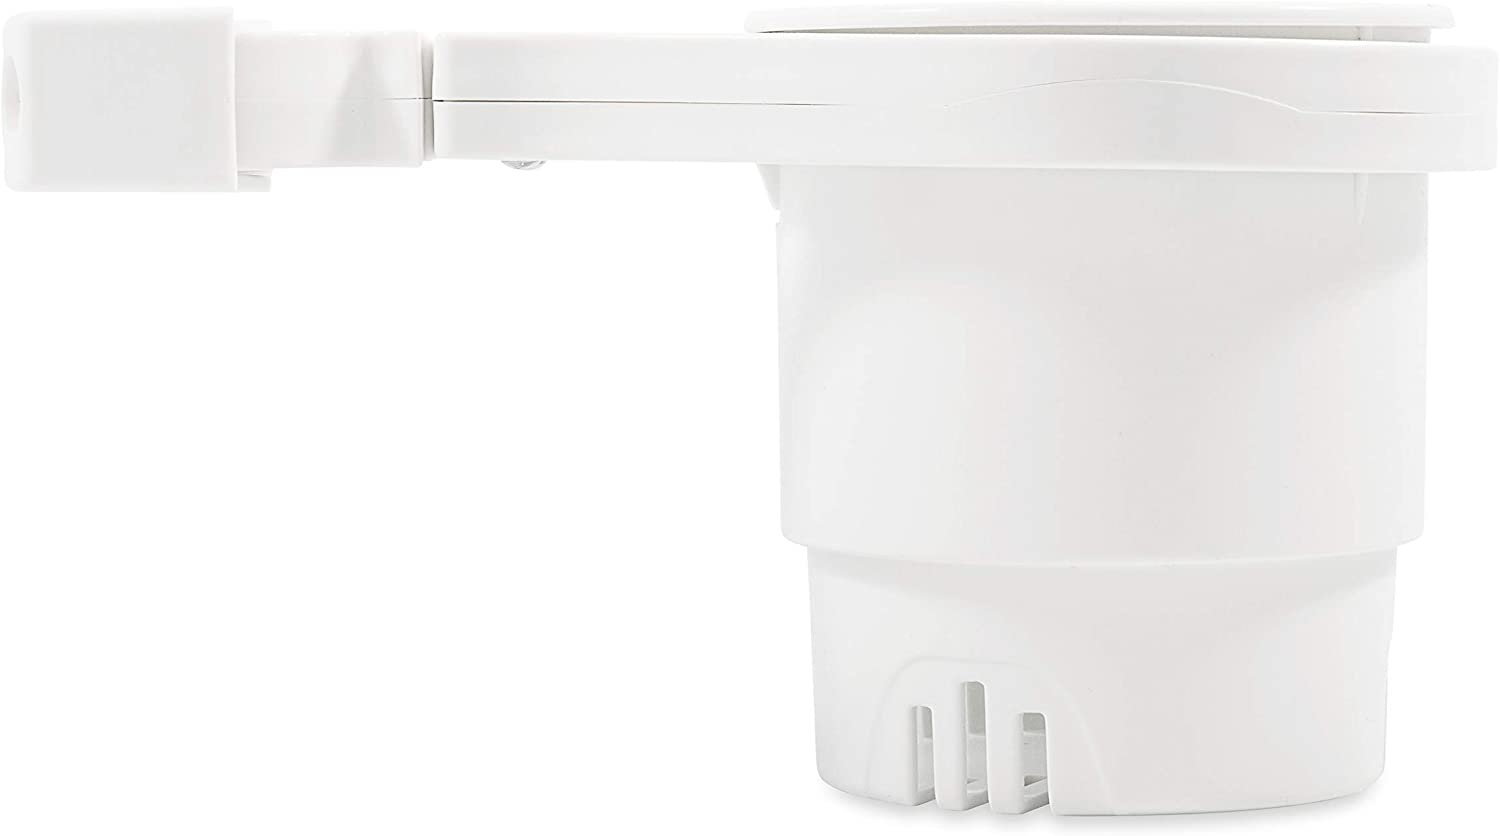 Camco Small Clamp Mounted Cup Holder-Provides a Secure Location for Your Beverage-Mountable for Up to 1-1/4-Inch Rail-White (53086)